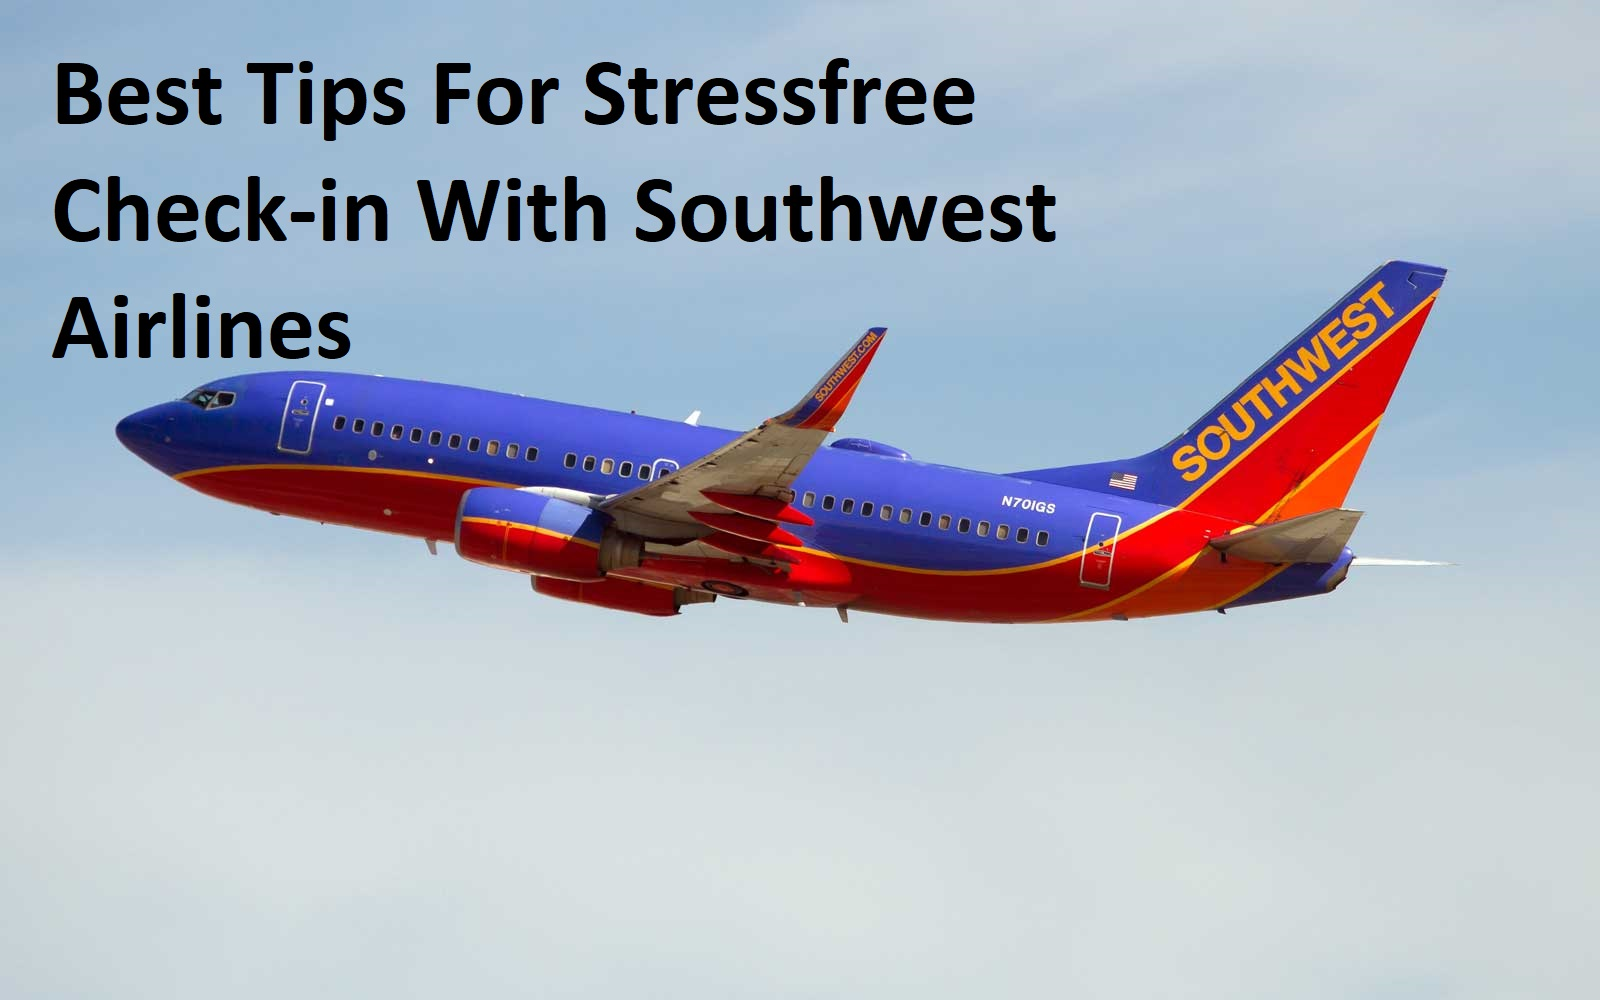 Best Tips For Stressfree Check-in With Southwest Airlines